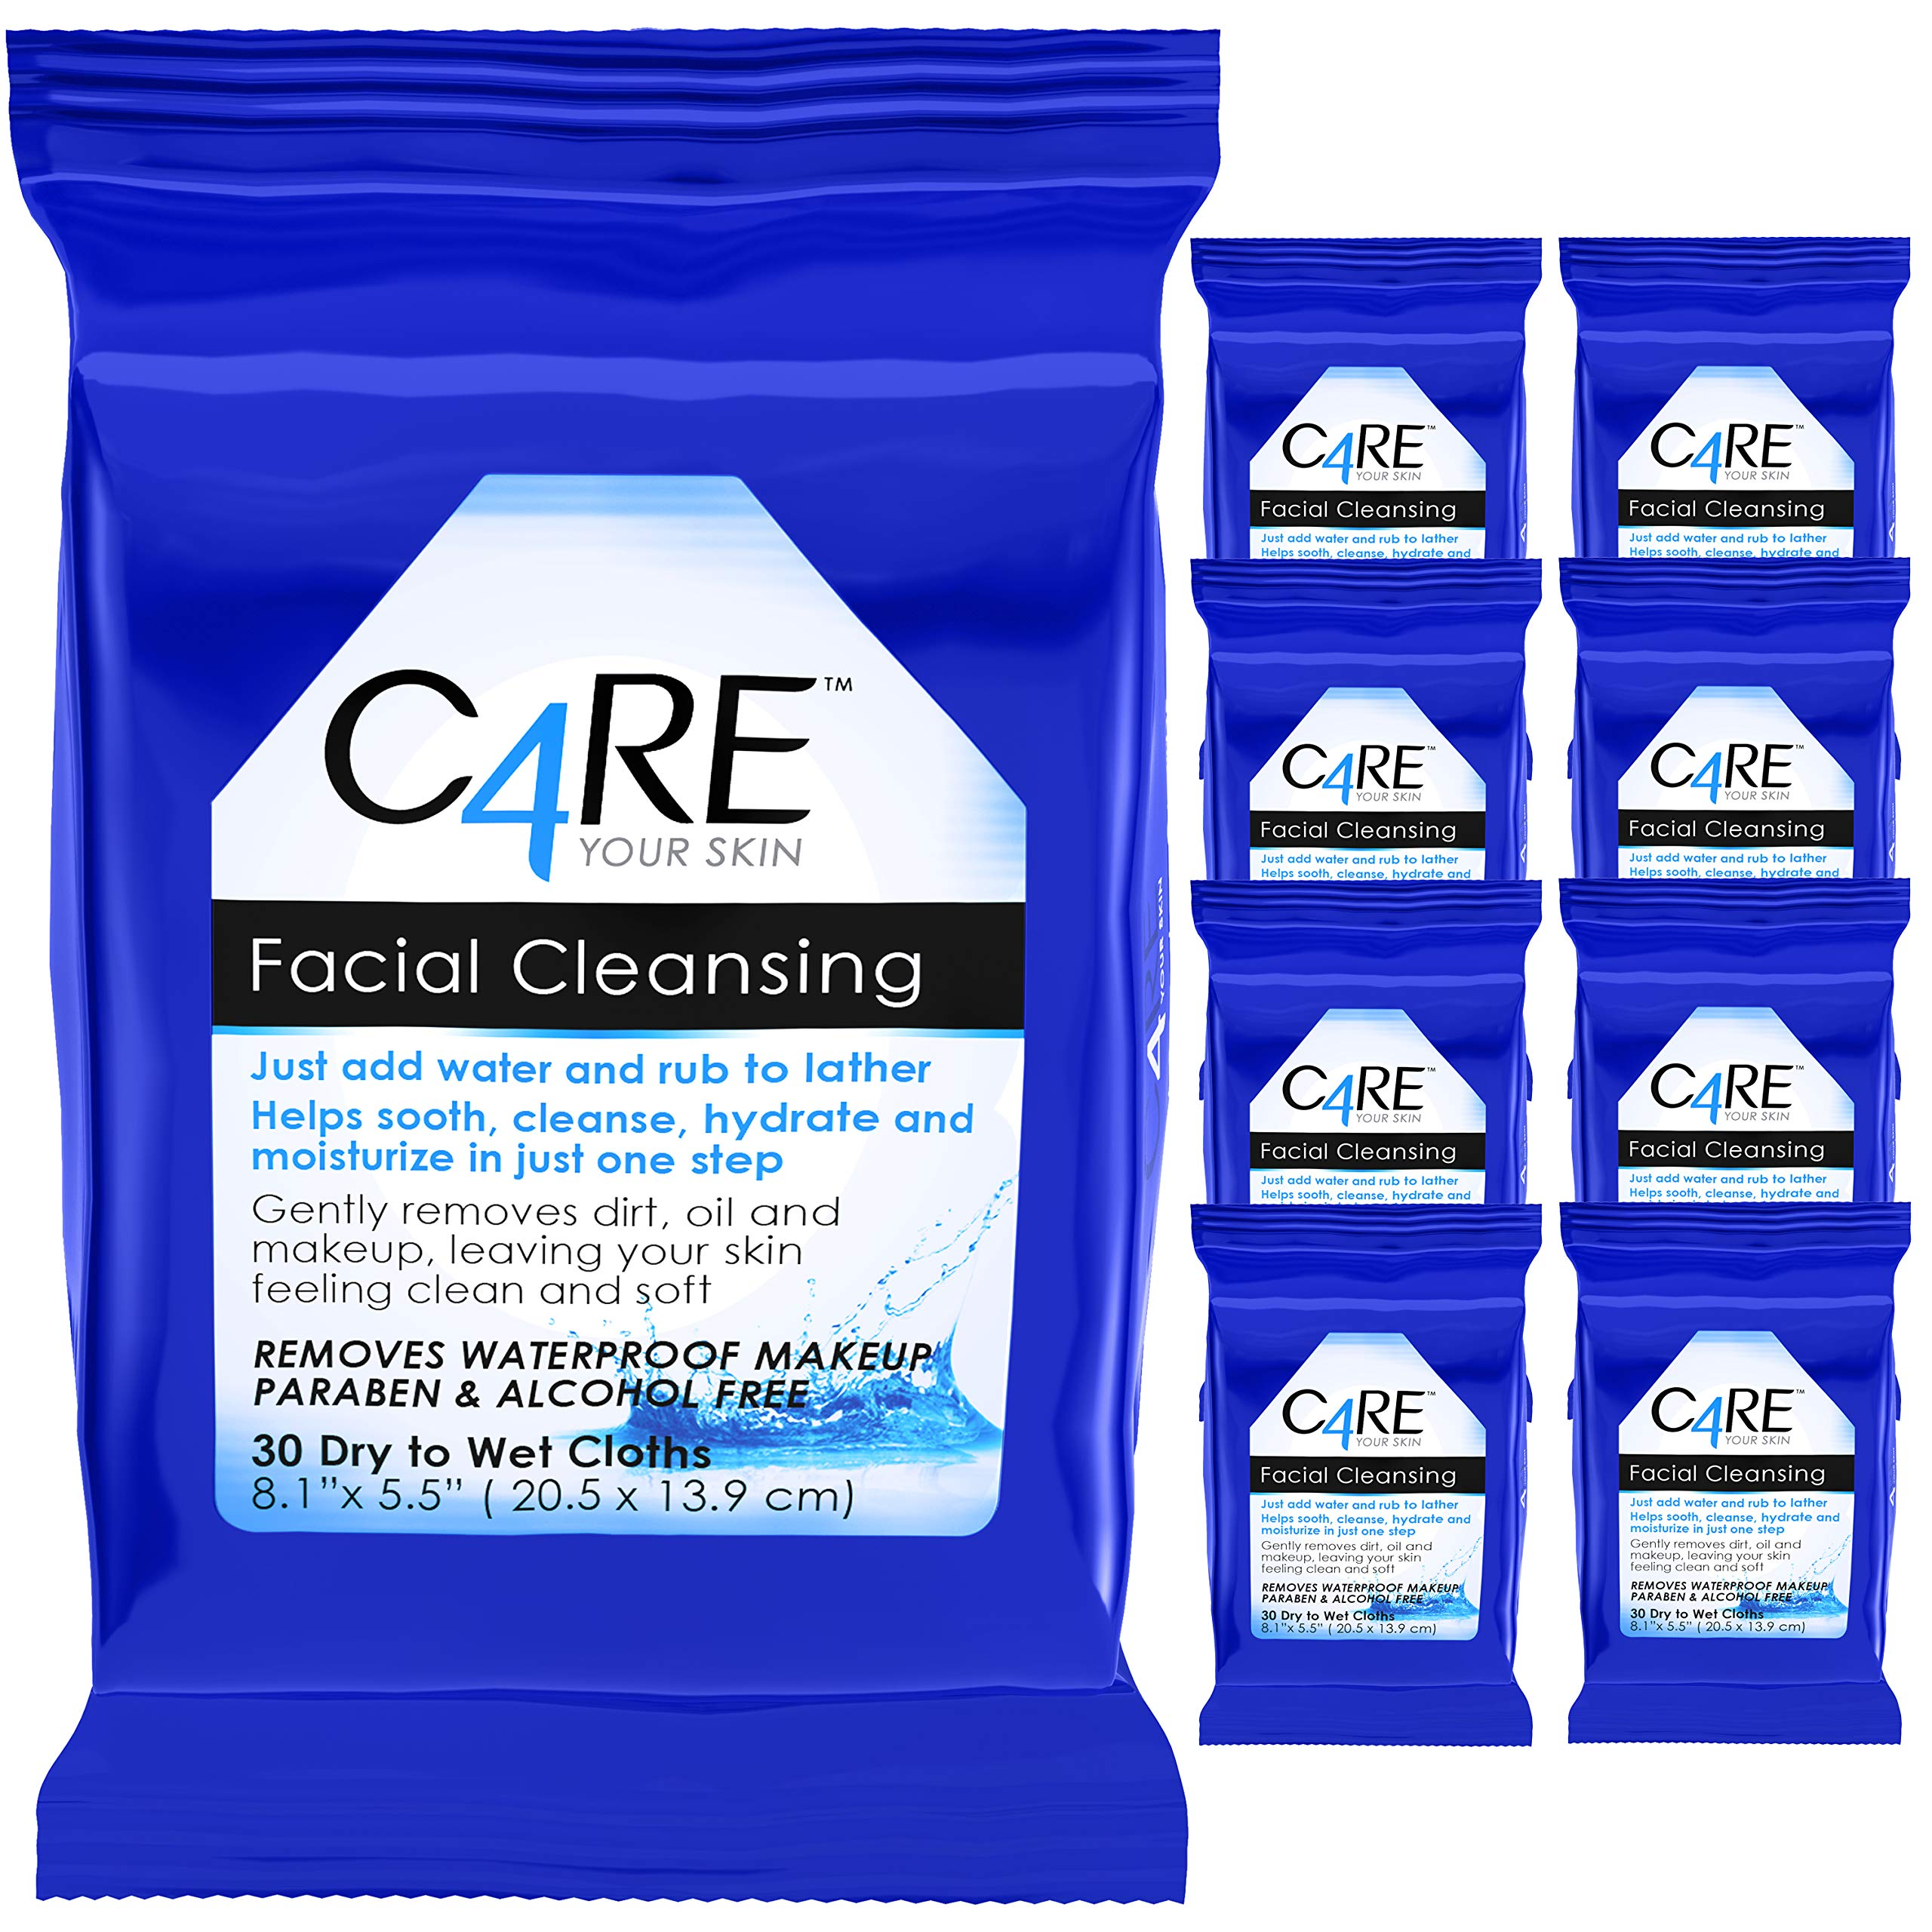 Care4 Dry to wet facial cleansing, 270 Count (9 Packs of 30 Wipes)